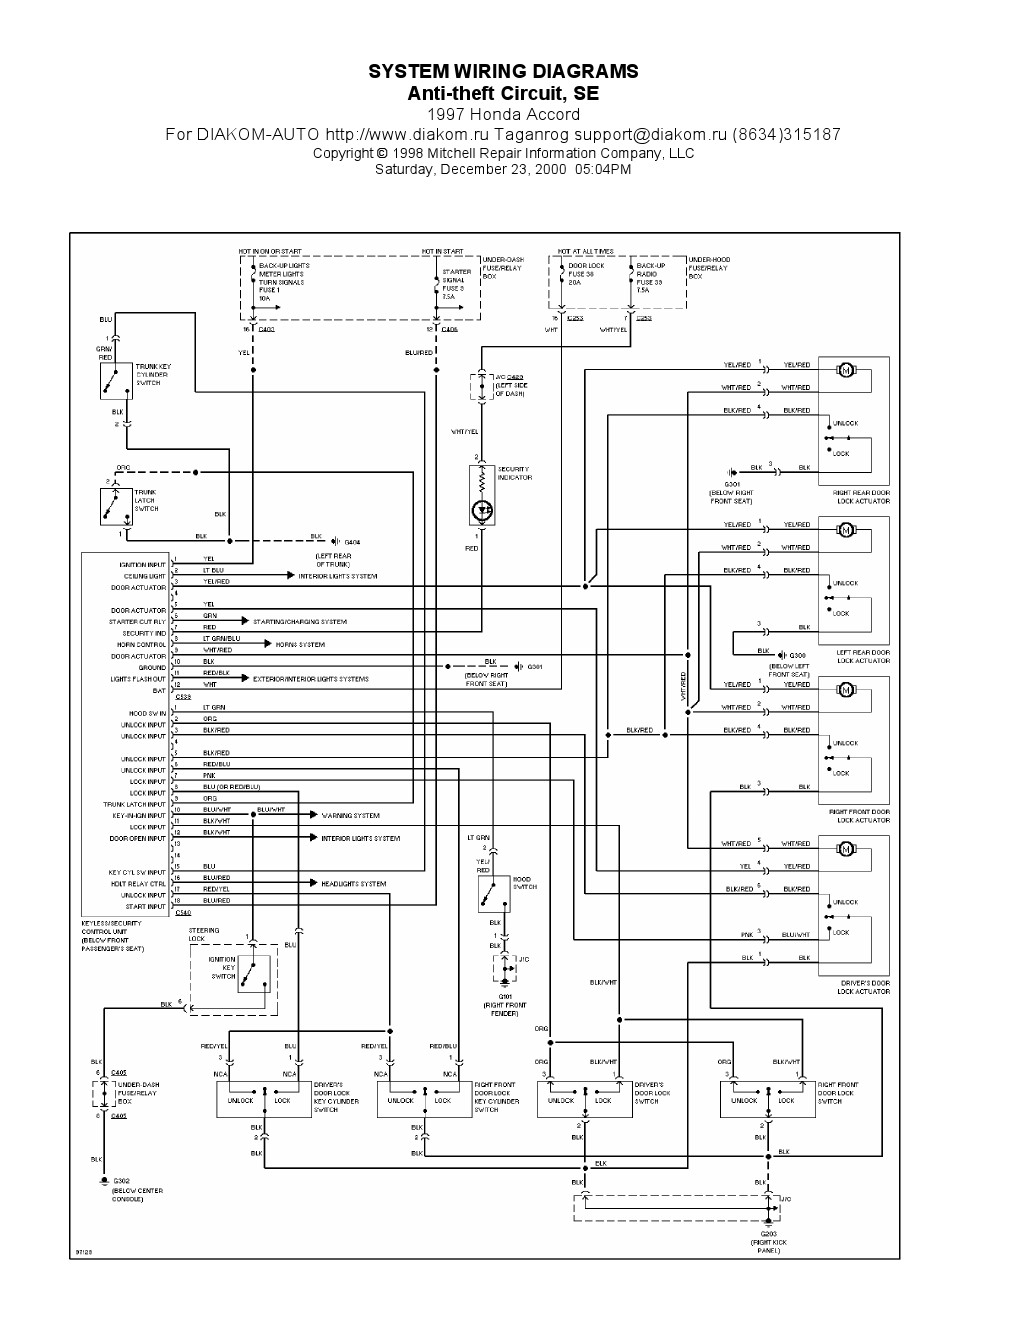 hight resolution of 97 honda accord wiring schematics wiring diagram forward 2007 honda accord wiring diagram pdf 97 honda